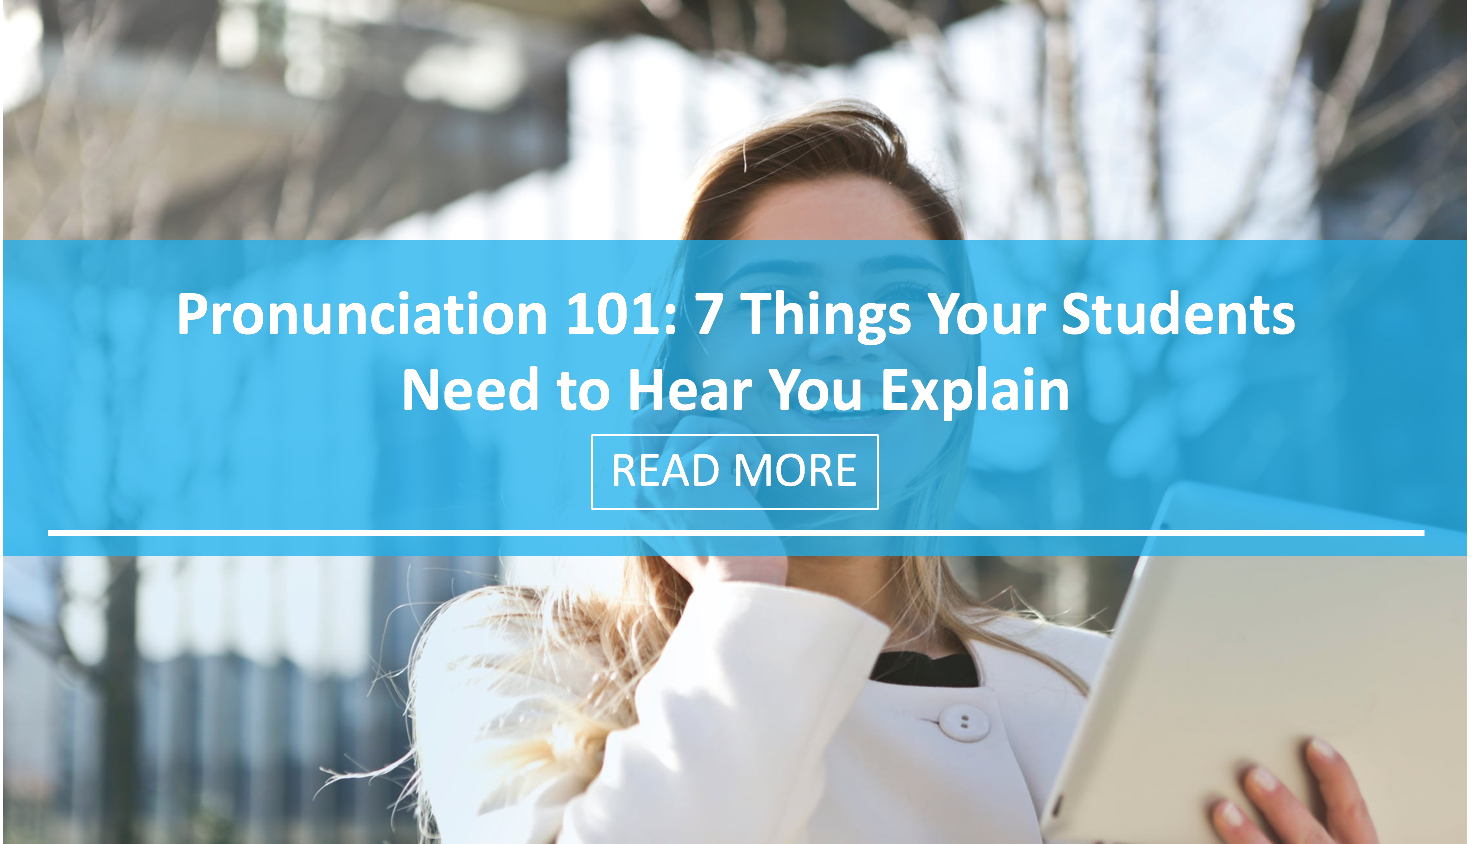 Pronunciation 101: 7 Things Your Students Need to Hear You Explain